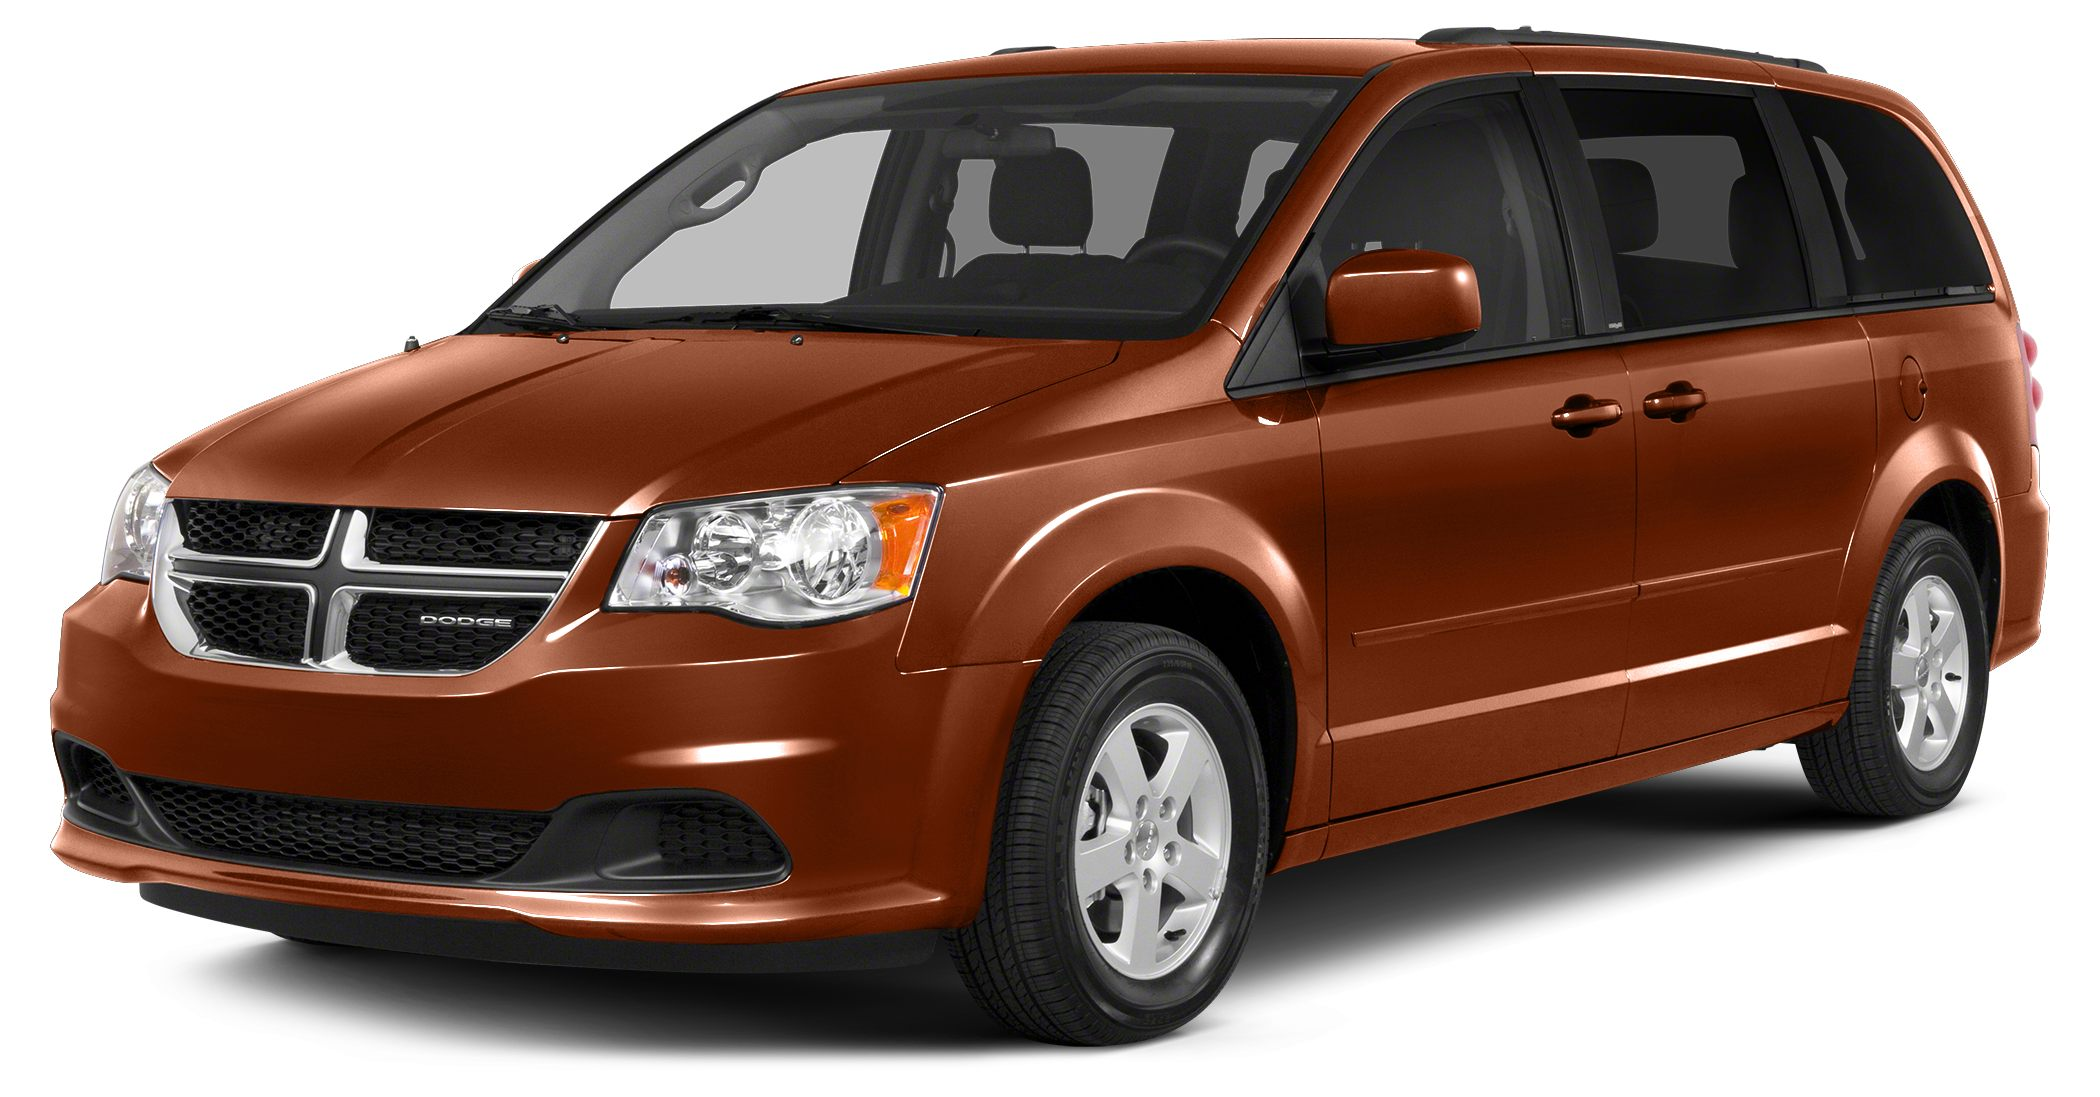 2014 Dodge Grand Caravan AVPSE Excellent Condition Dodge Certified PRICED TO MOVE 600 below NA